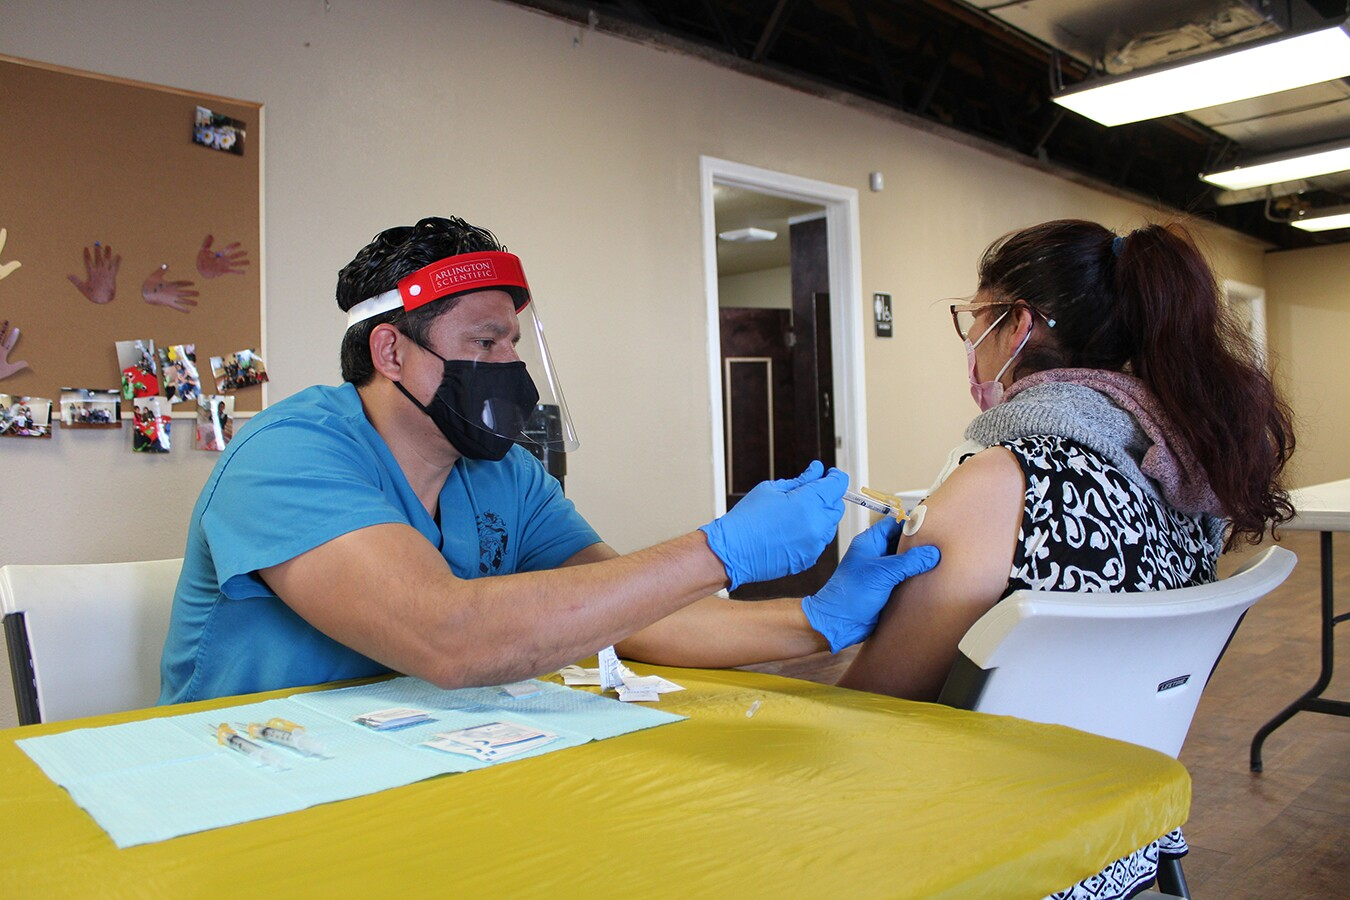 A woman receives her COVID vaccine by a yellow table. The shot is being administered by a man in teal blue scrubs.